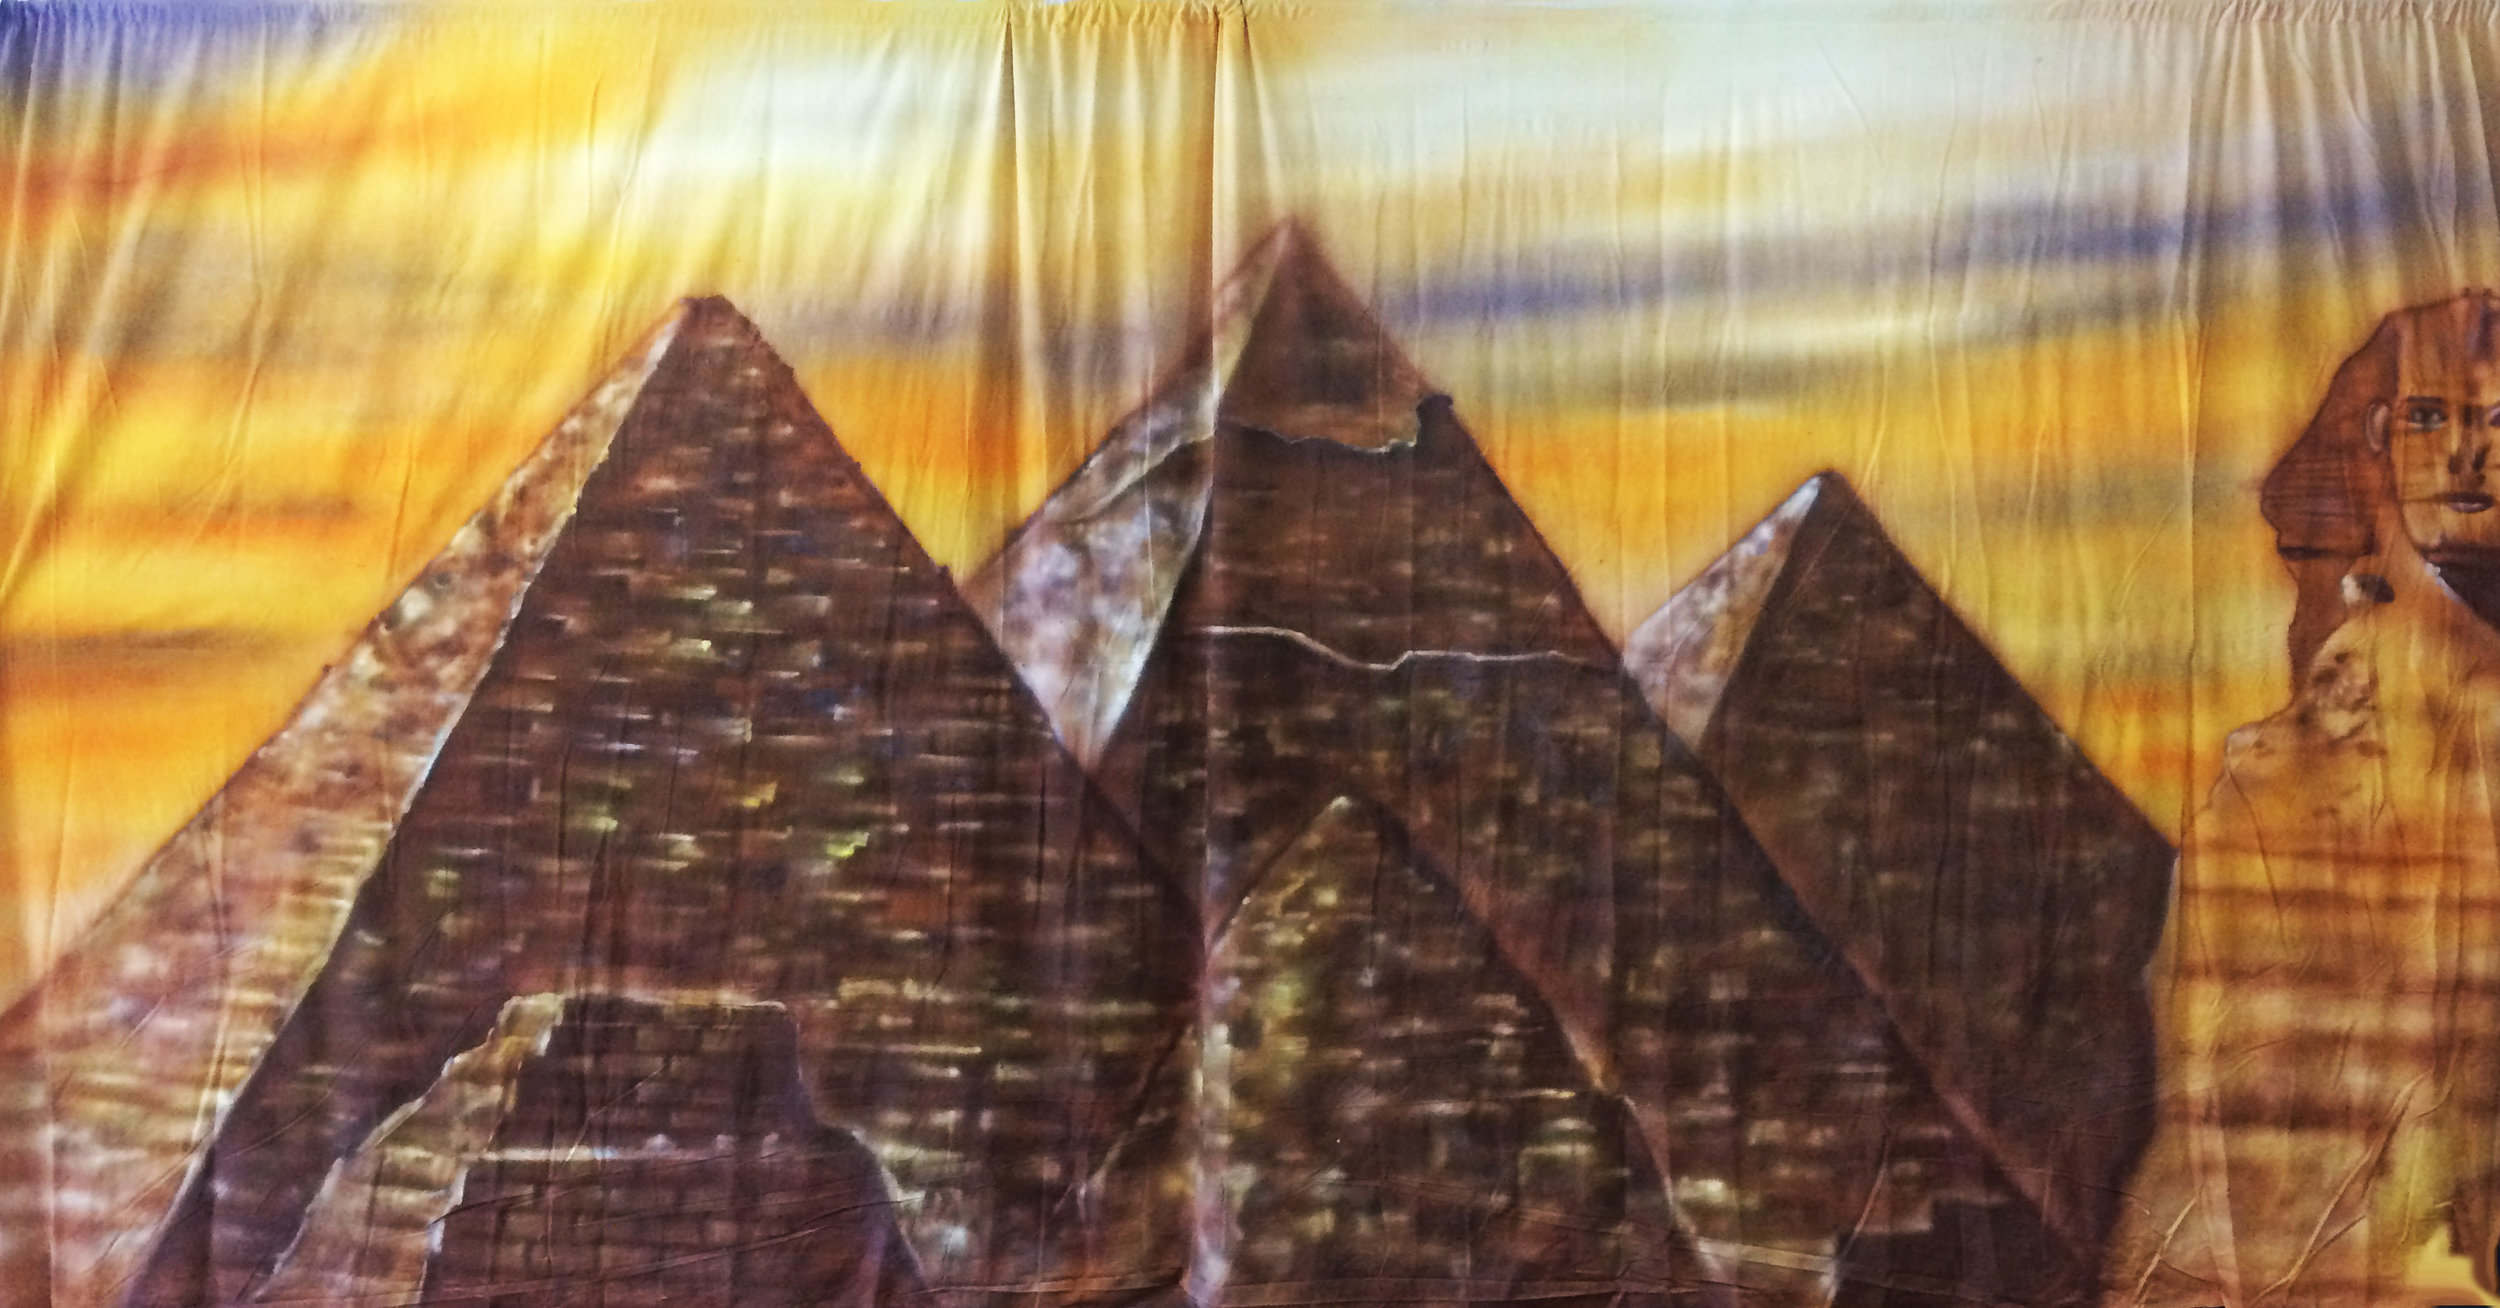 backdrop for hire - egypt pyramids.jpg